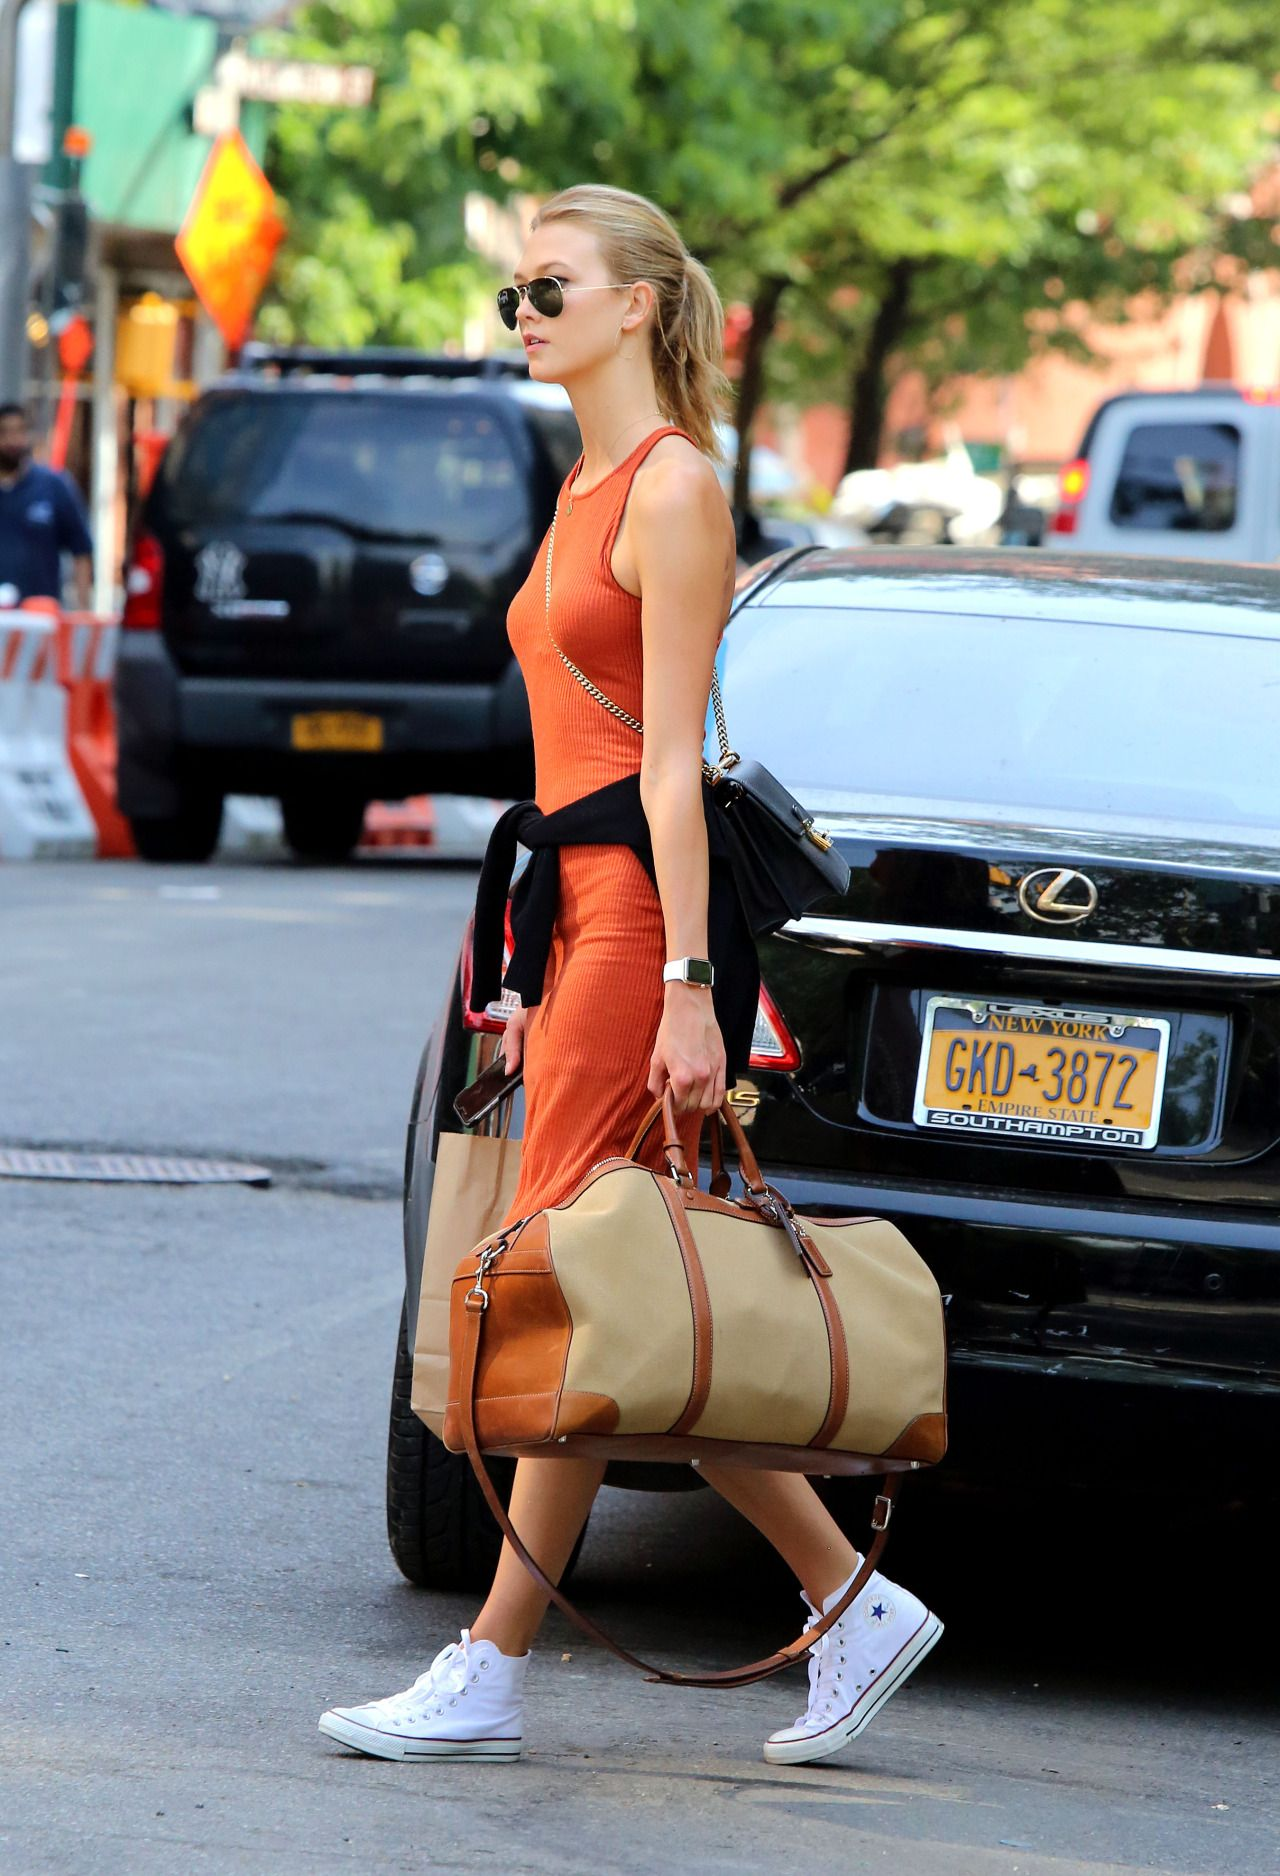 Ribbed Orange Tank Dress With White Converse Hi Tops And